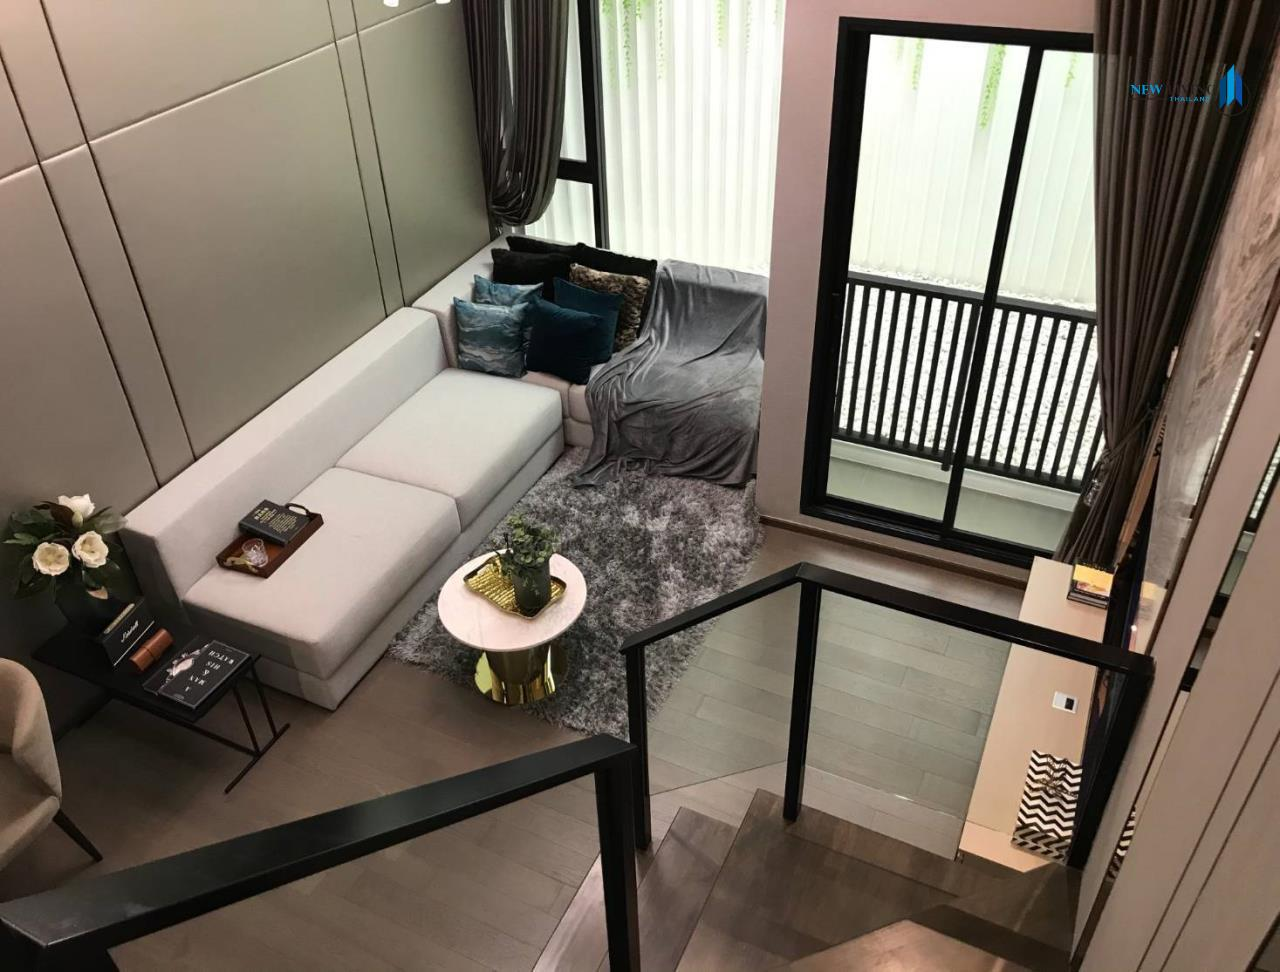 New Living Thailand Agency's Sell Down Payment, Park Origin Ratchathewi ** 1 Deplex 34 sq.m. high floor near BTS Ratchathewi 2